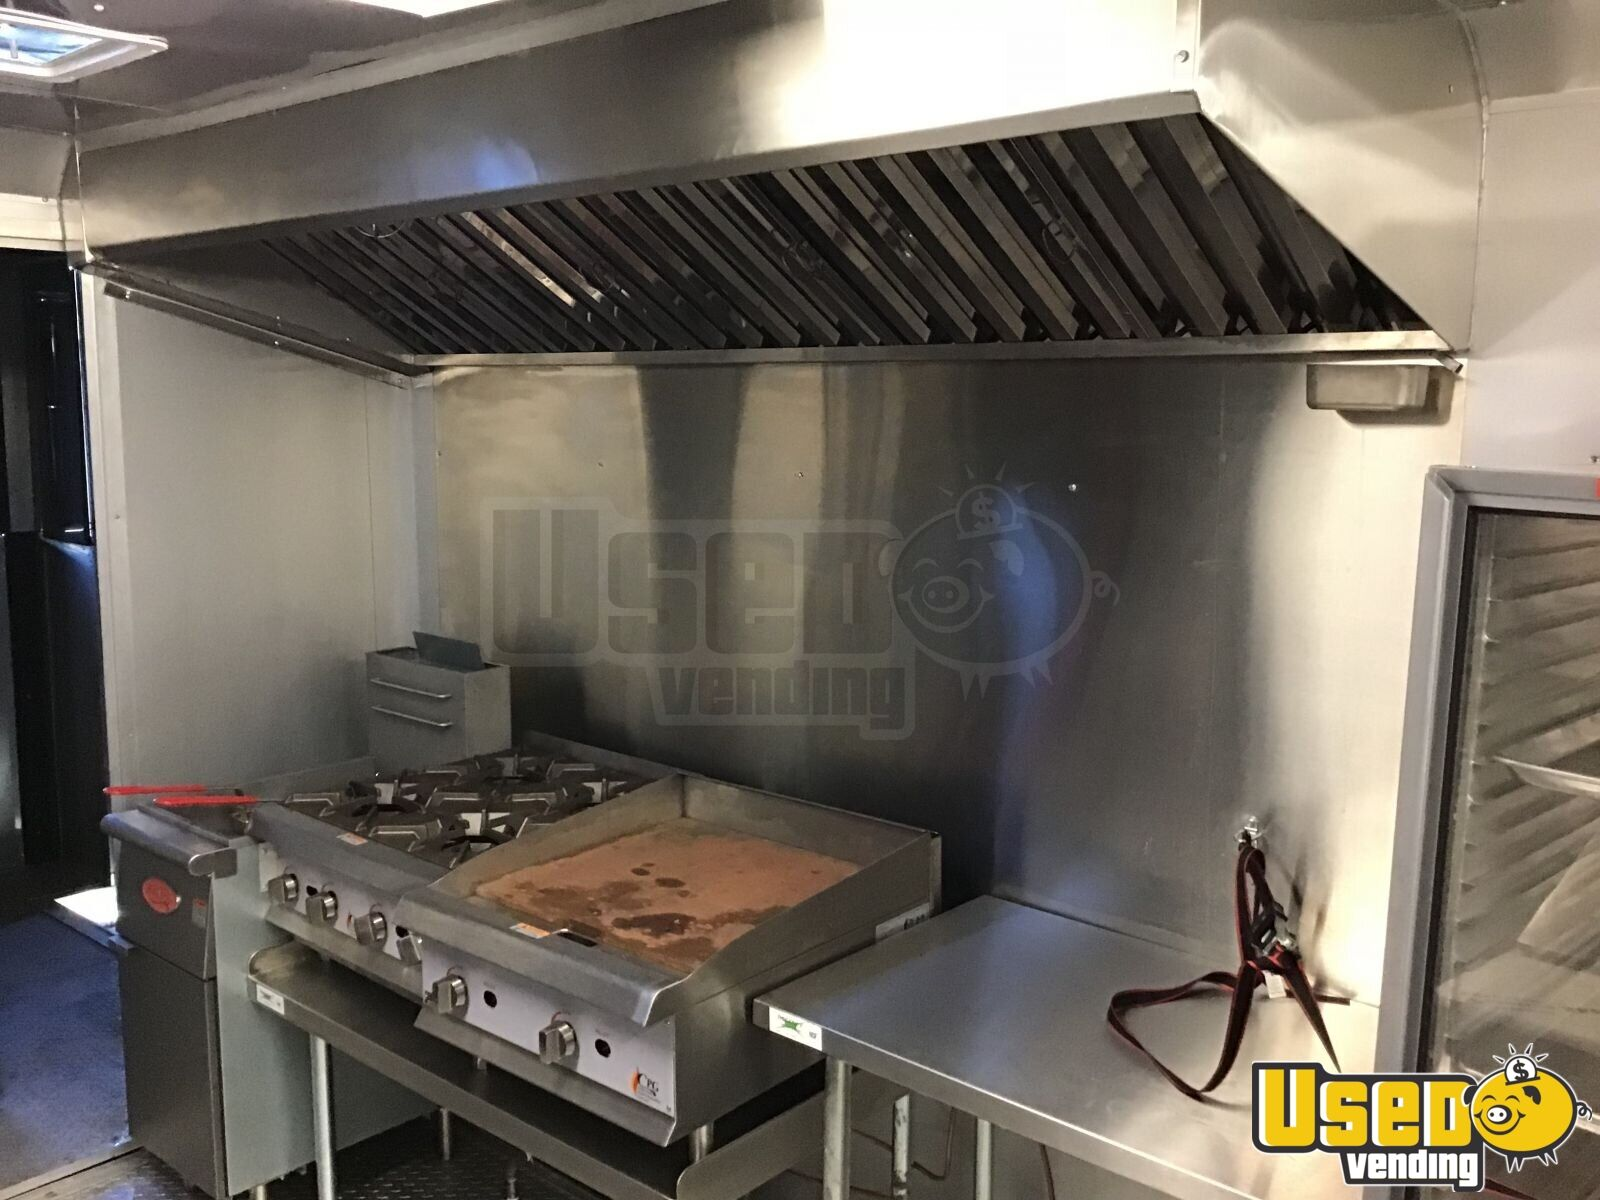 2016 Barbecue Food Trailer Concession Window Texas for Sale - 3